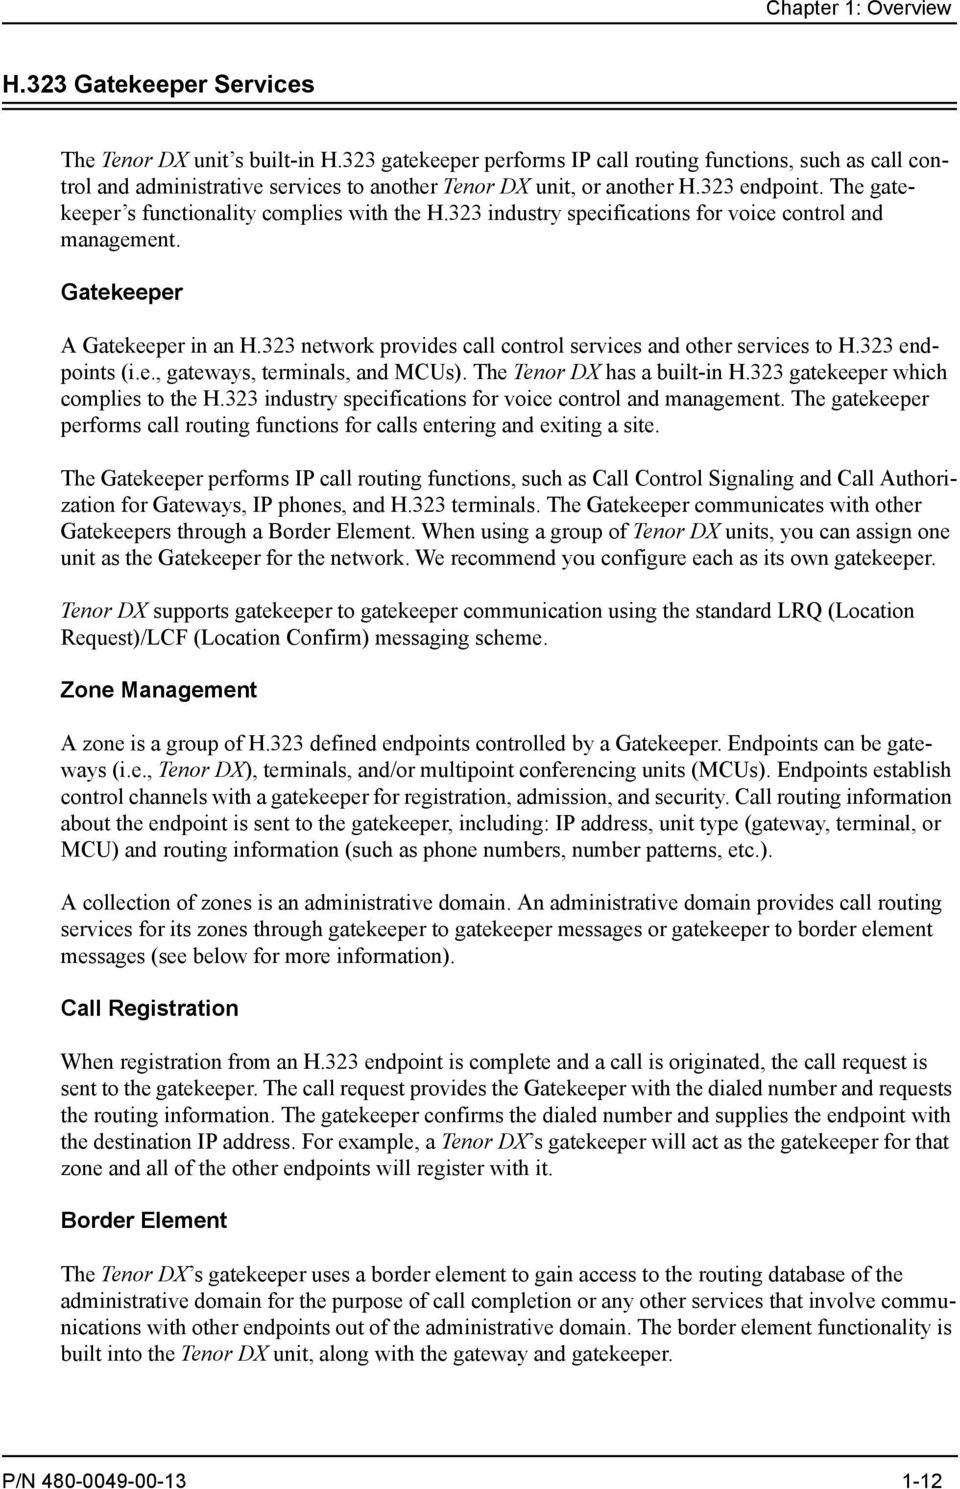 The gatekeeper s functionality complies with the H.323 industry specifications for voice control and management. Gatekeeper A Gatekeeper in an H.